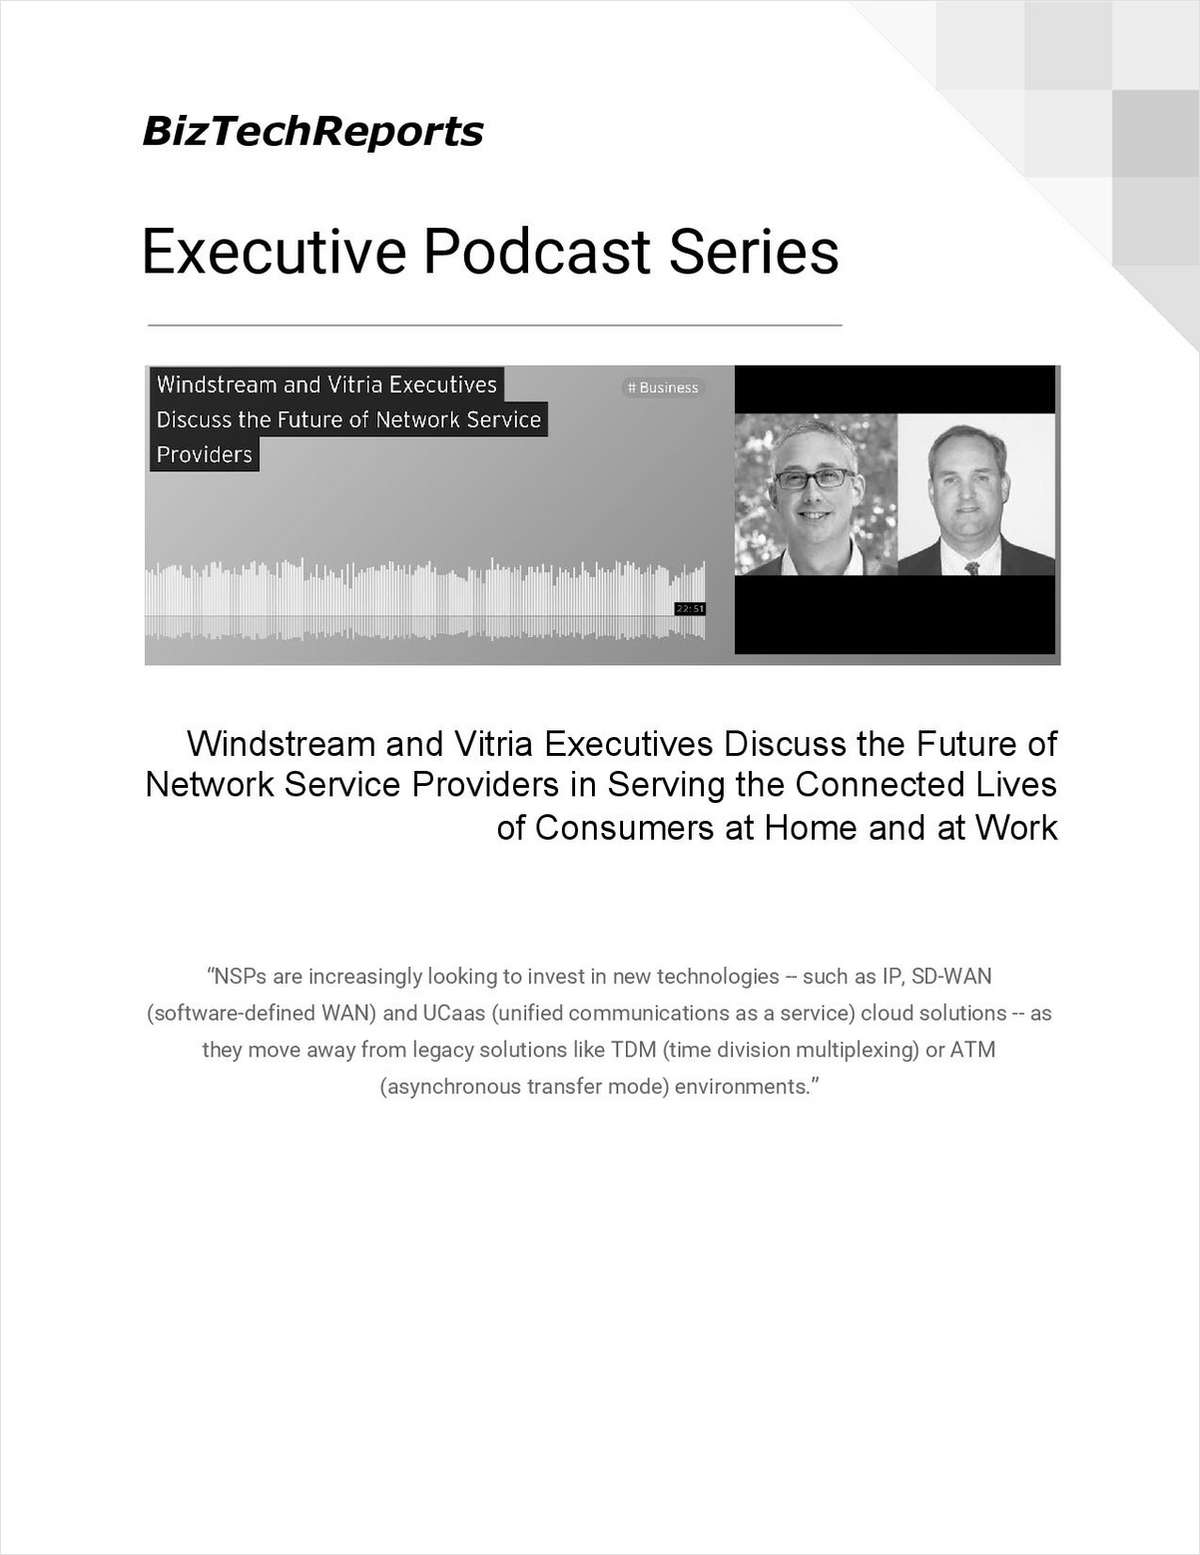 Windstream and Vitria Executives Discuss the Future of Network Service Providers in Serving the Connected Lives of Consumers at Home and at Work